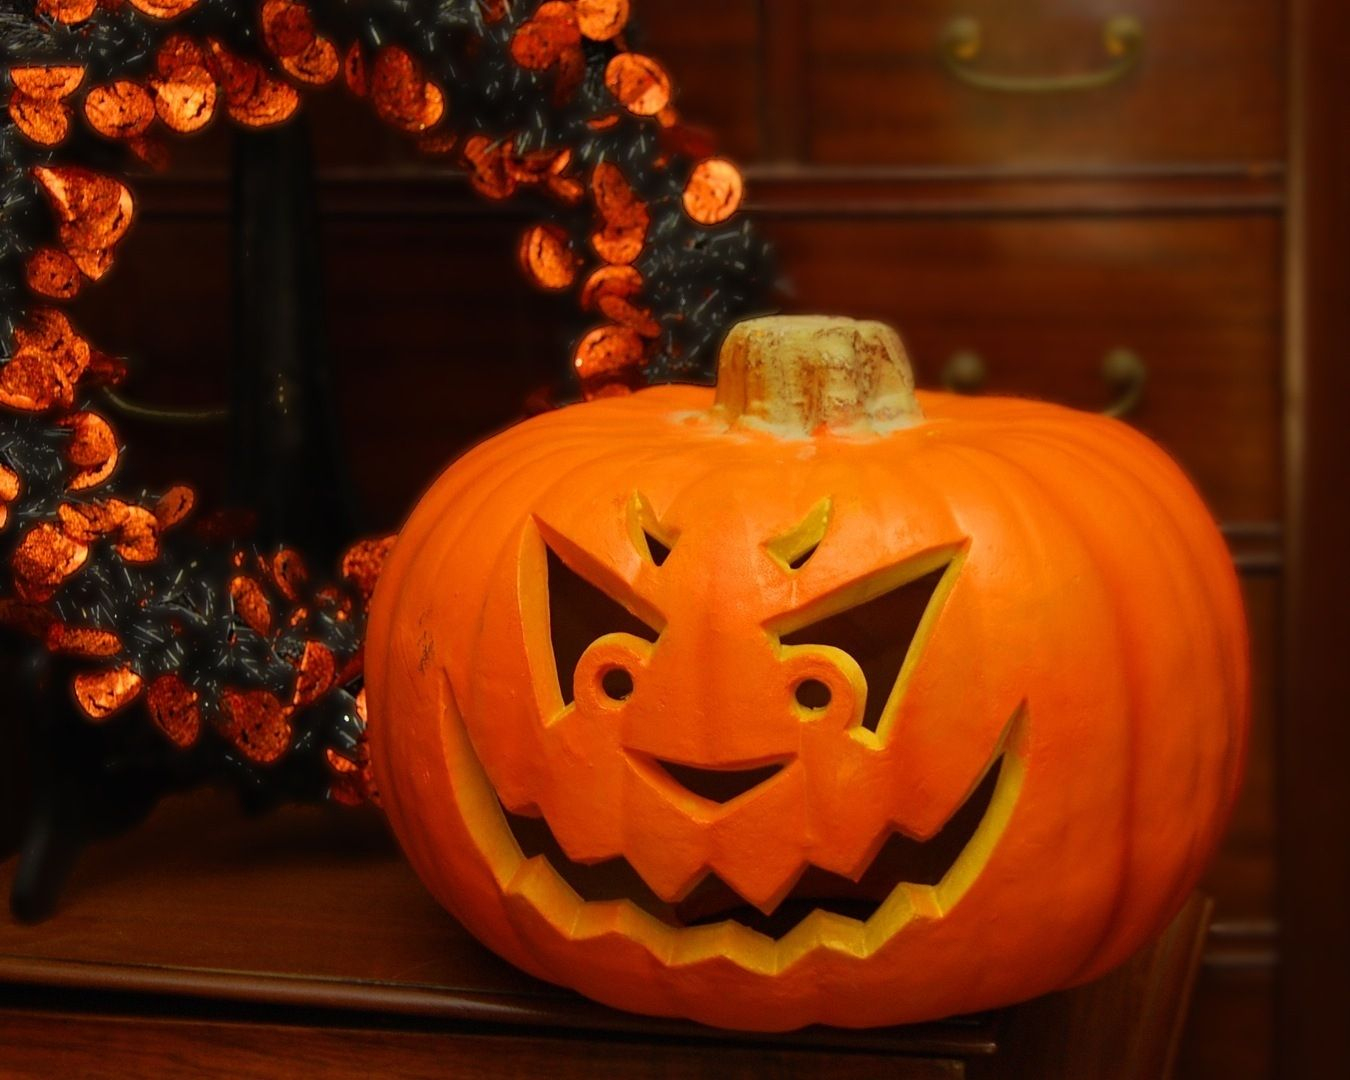 Cool Easy Pumpkin Carving Ideas 2016, Scary Printable Pumpkin - Free Online Pumpkin Carving Patterns Printable